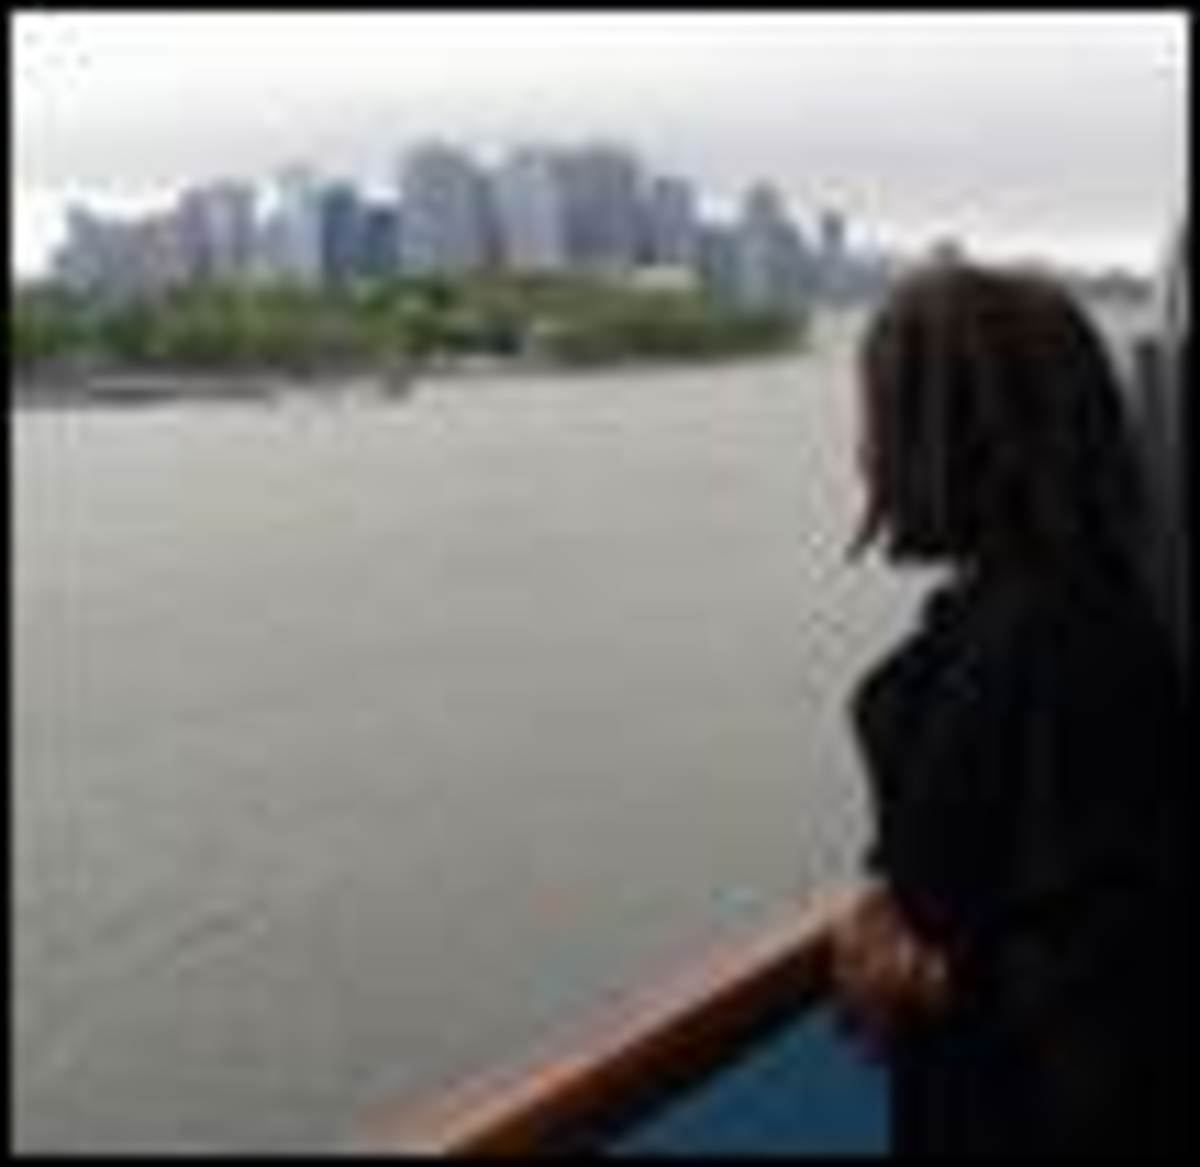 Me on the ship's balcony - of my cousins' stateroom - looking at the NYC harbor